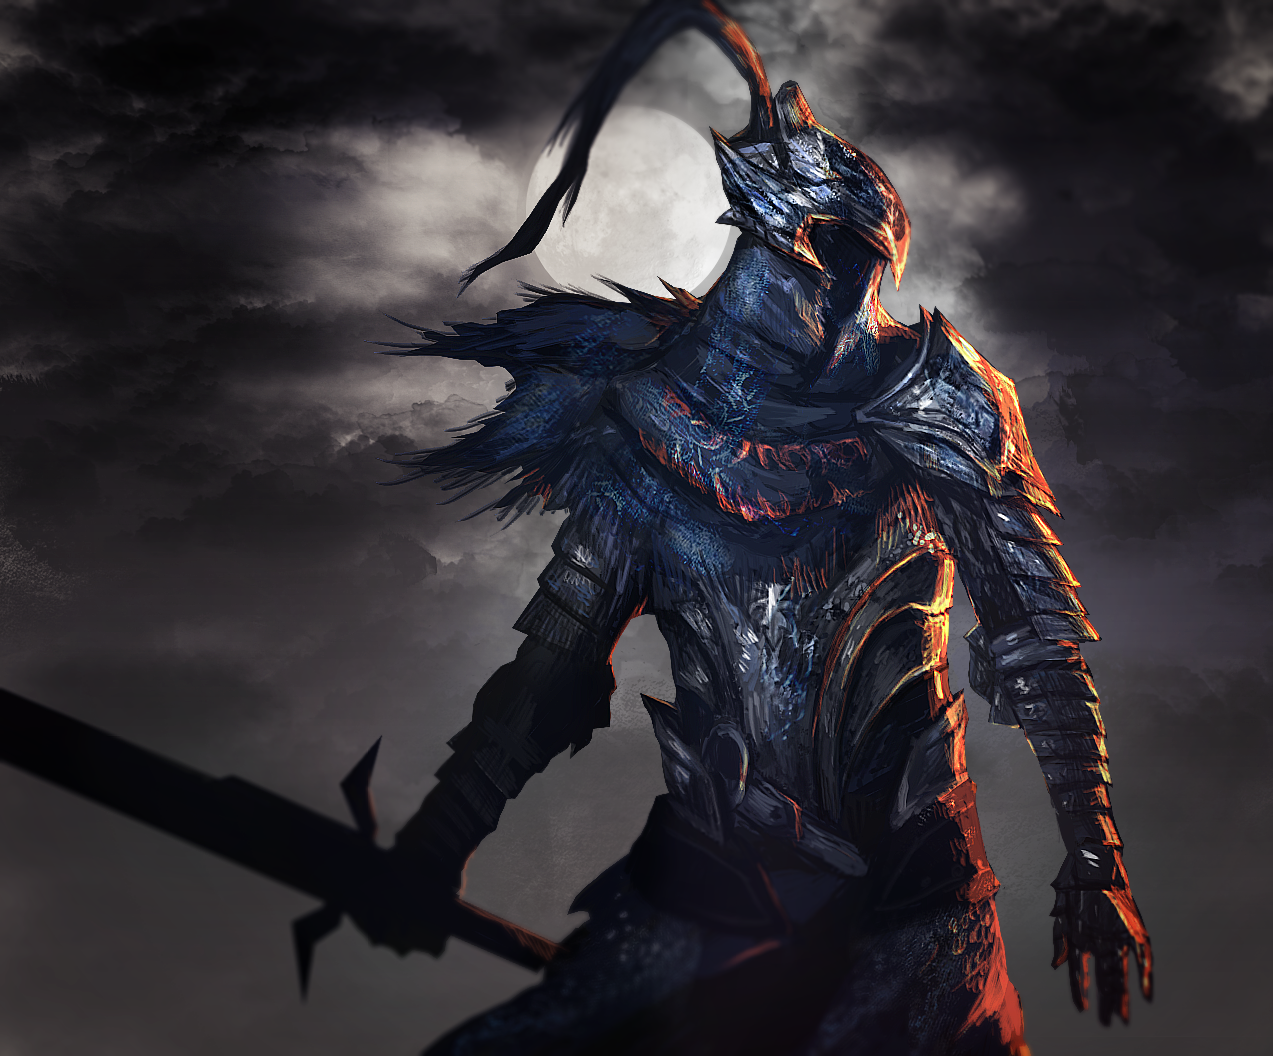 http://www.gamer.ru/system/attached_images/images/000/676/708/original/dark-souls-fendomy-ds-art-ds-personazhi-1348885.png